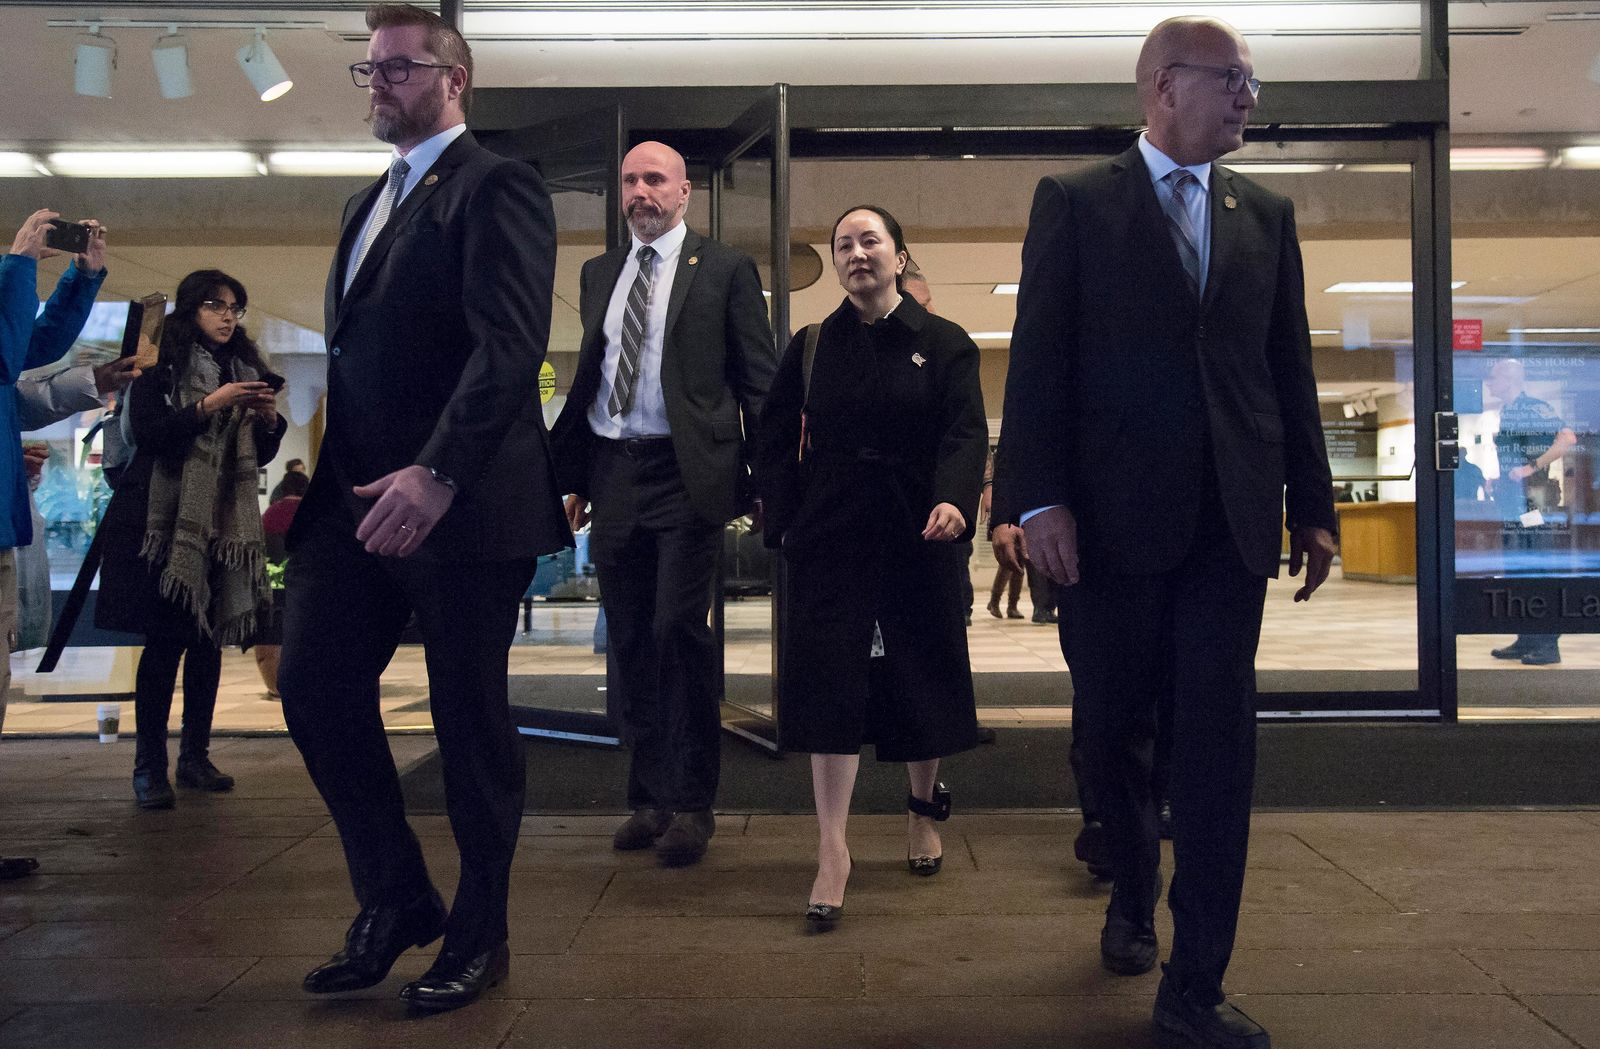 Meng Wanzhou, chief financial officer of Huawei, is flanked by security as she leaves B.C. Supreme Court in Vancouver, Thursday, January 23, 2020. (Jonathan Hayward/The Canadian Press via AP)